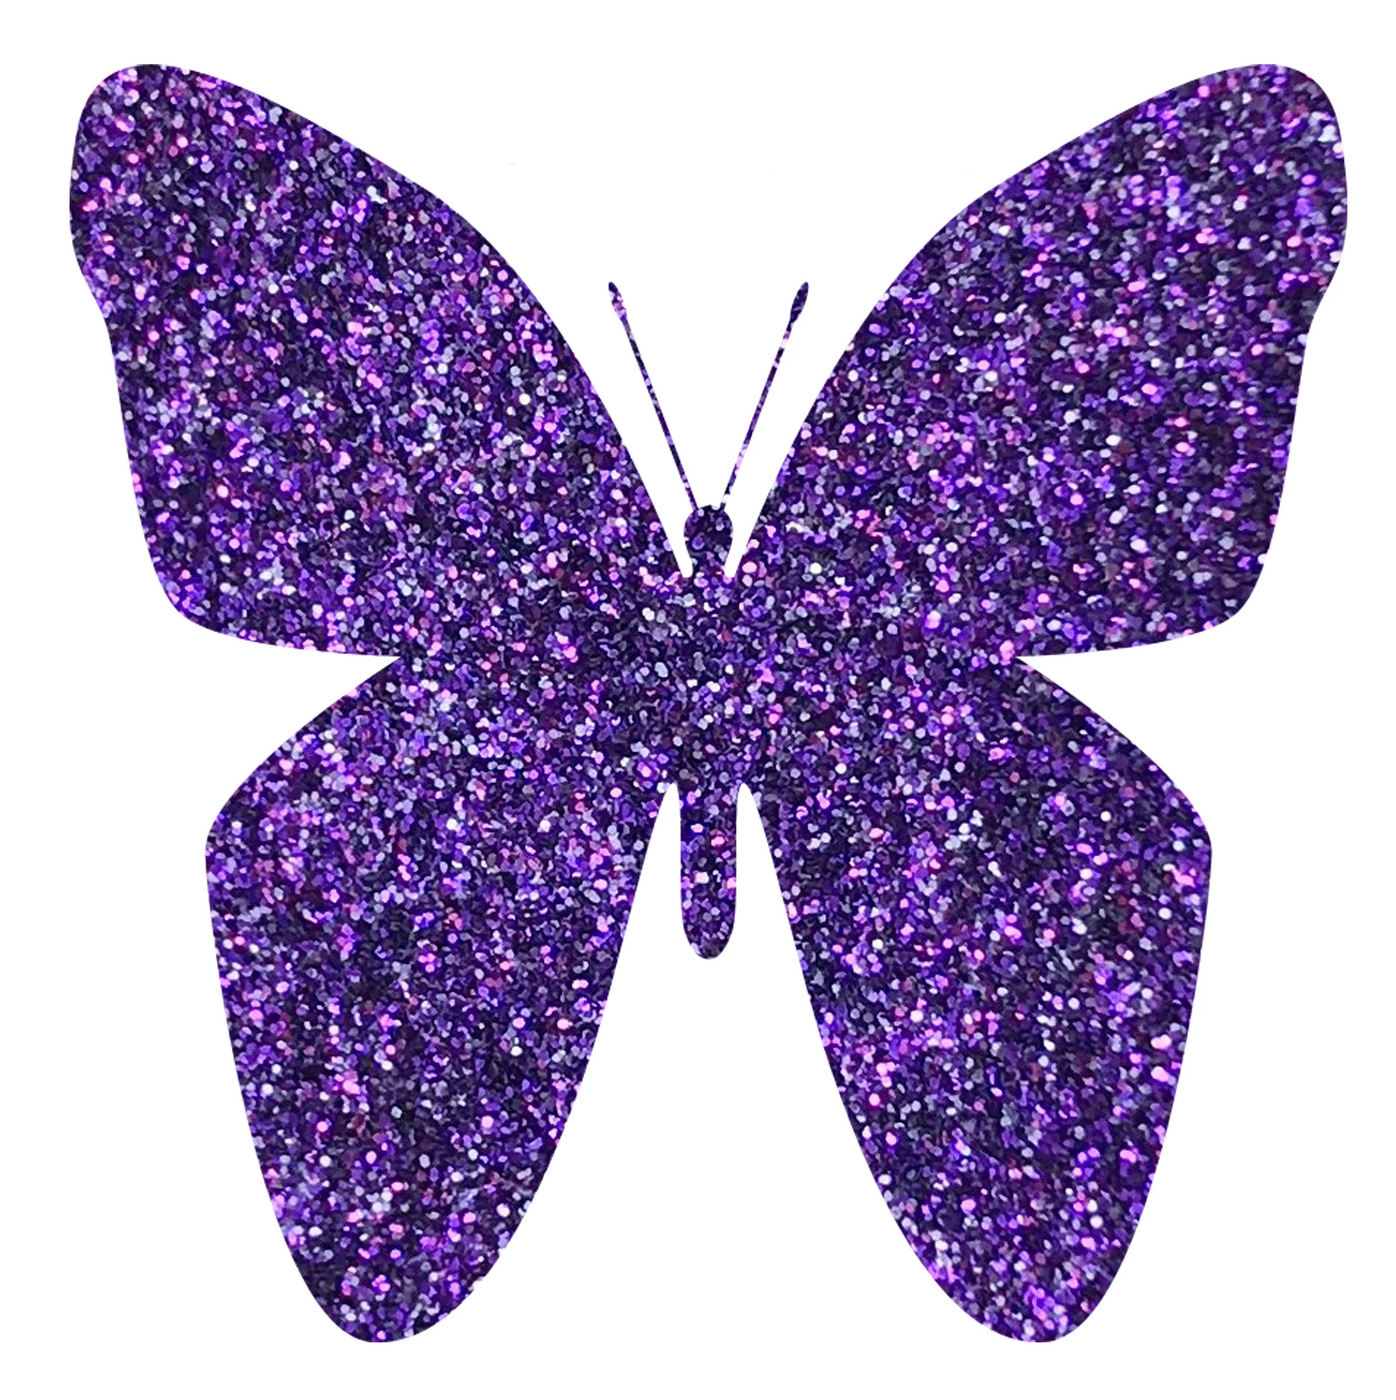 Ultrafine Glitter Impulsive Purple G1069